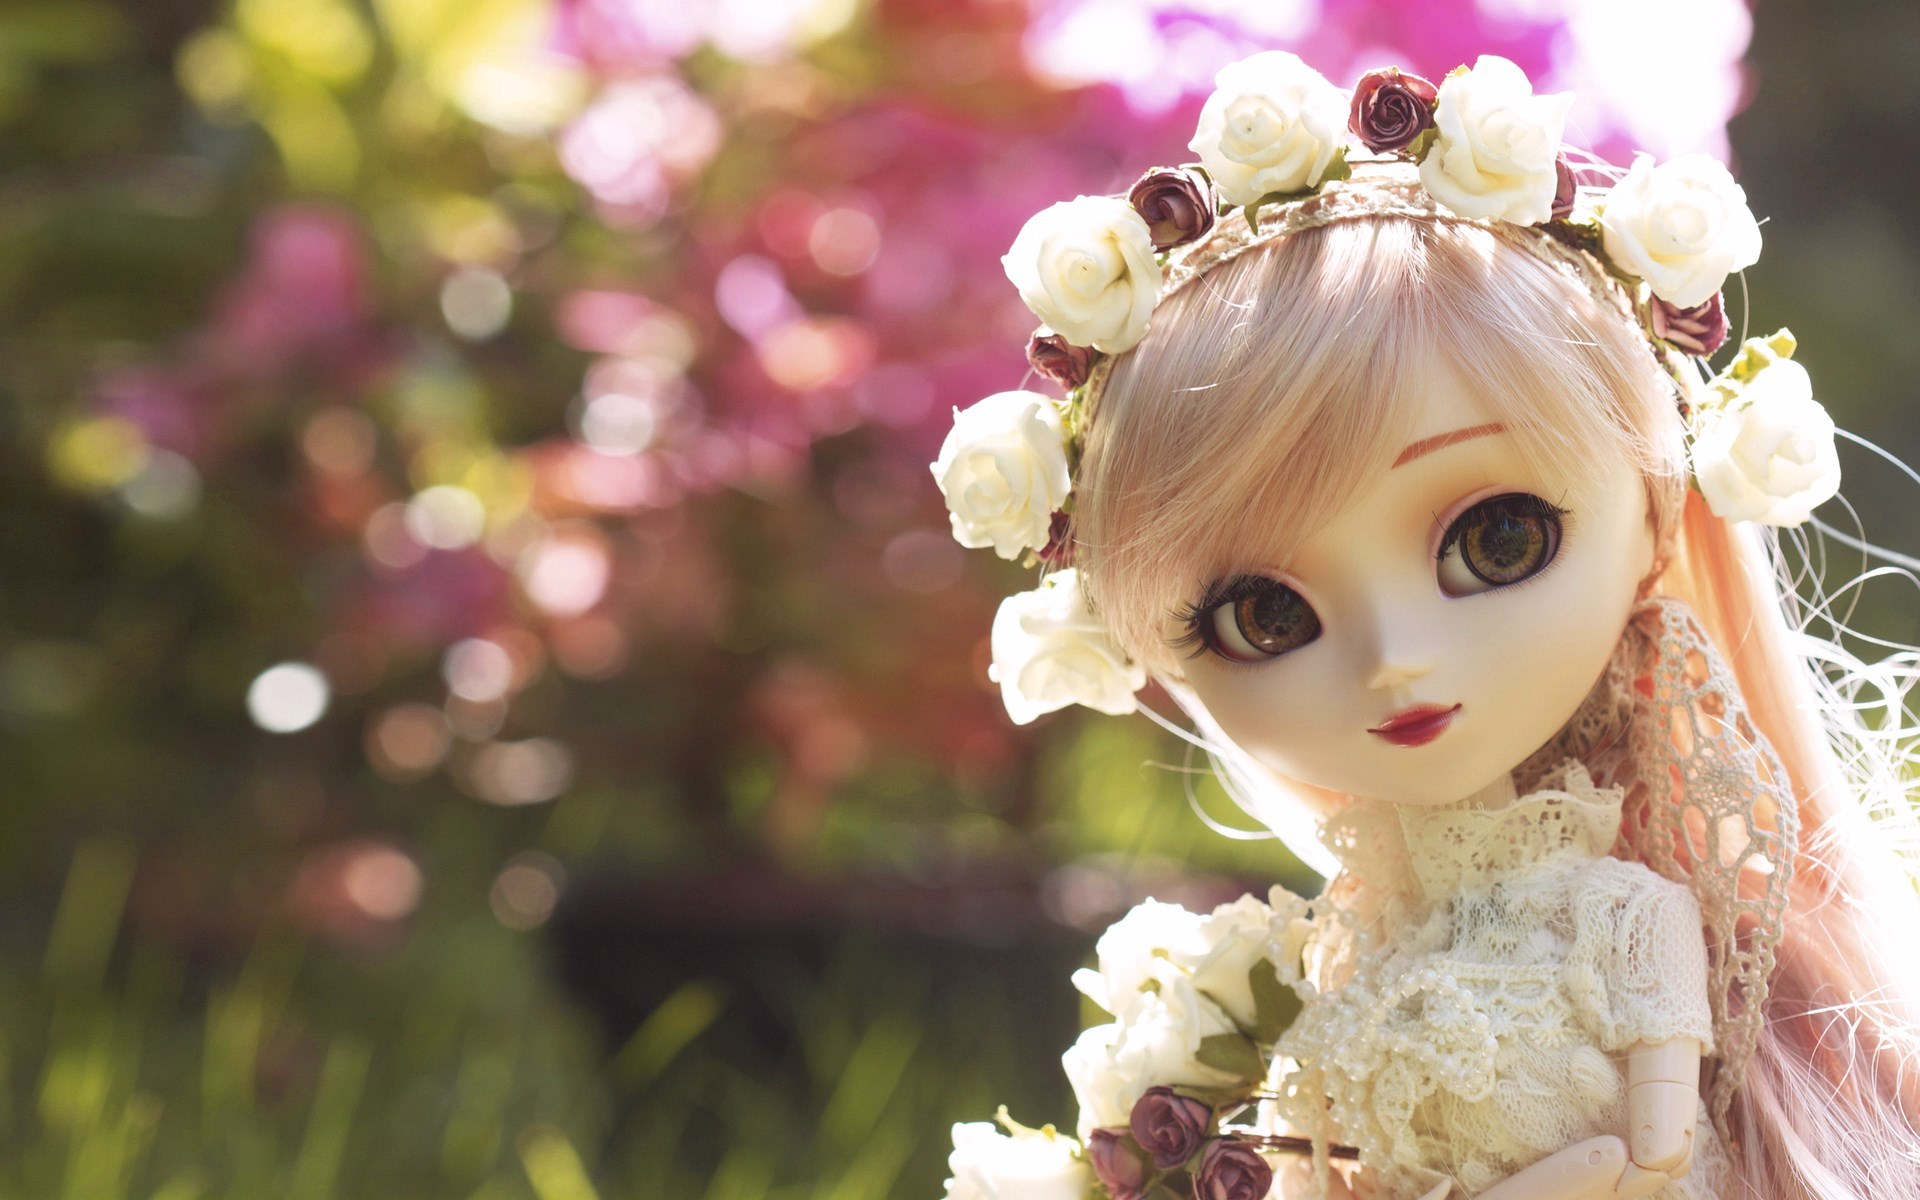 Lovely Toy Doll Wallpaper